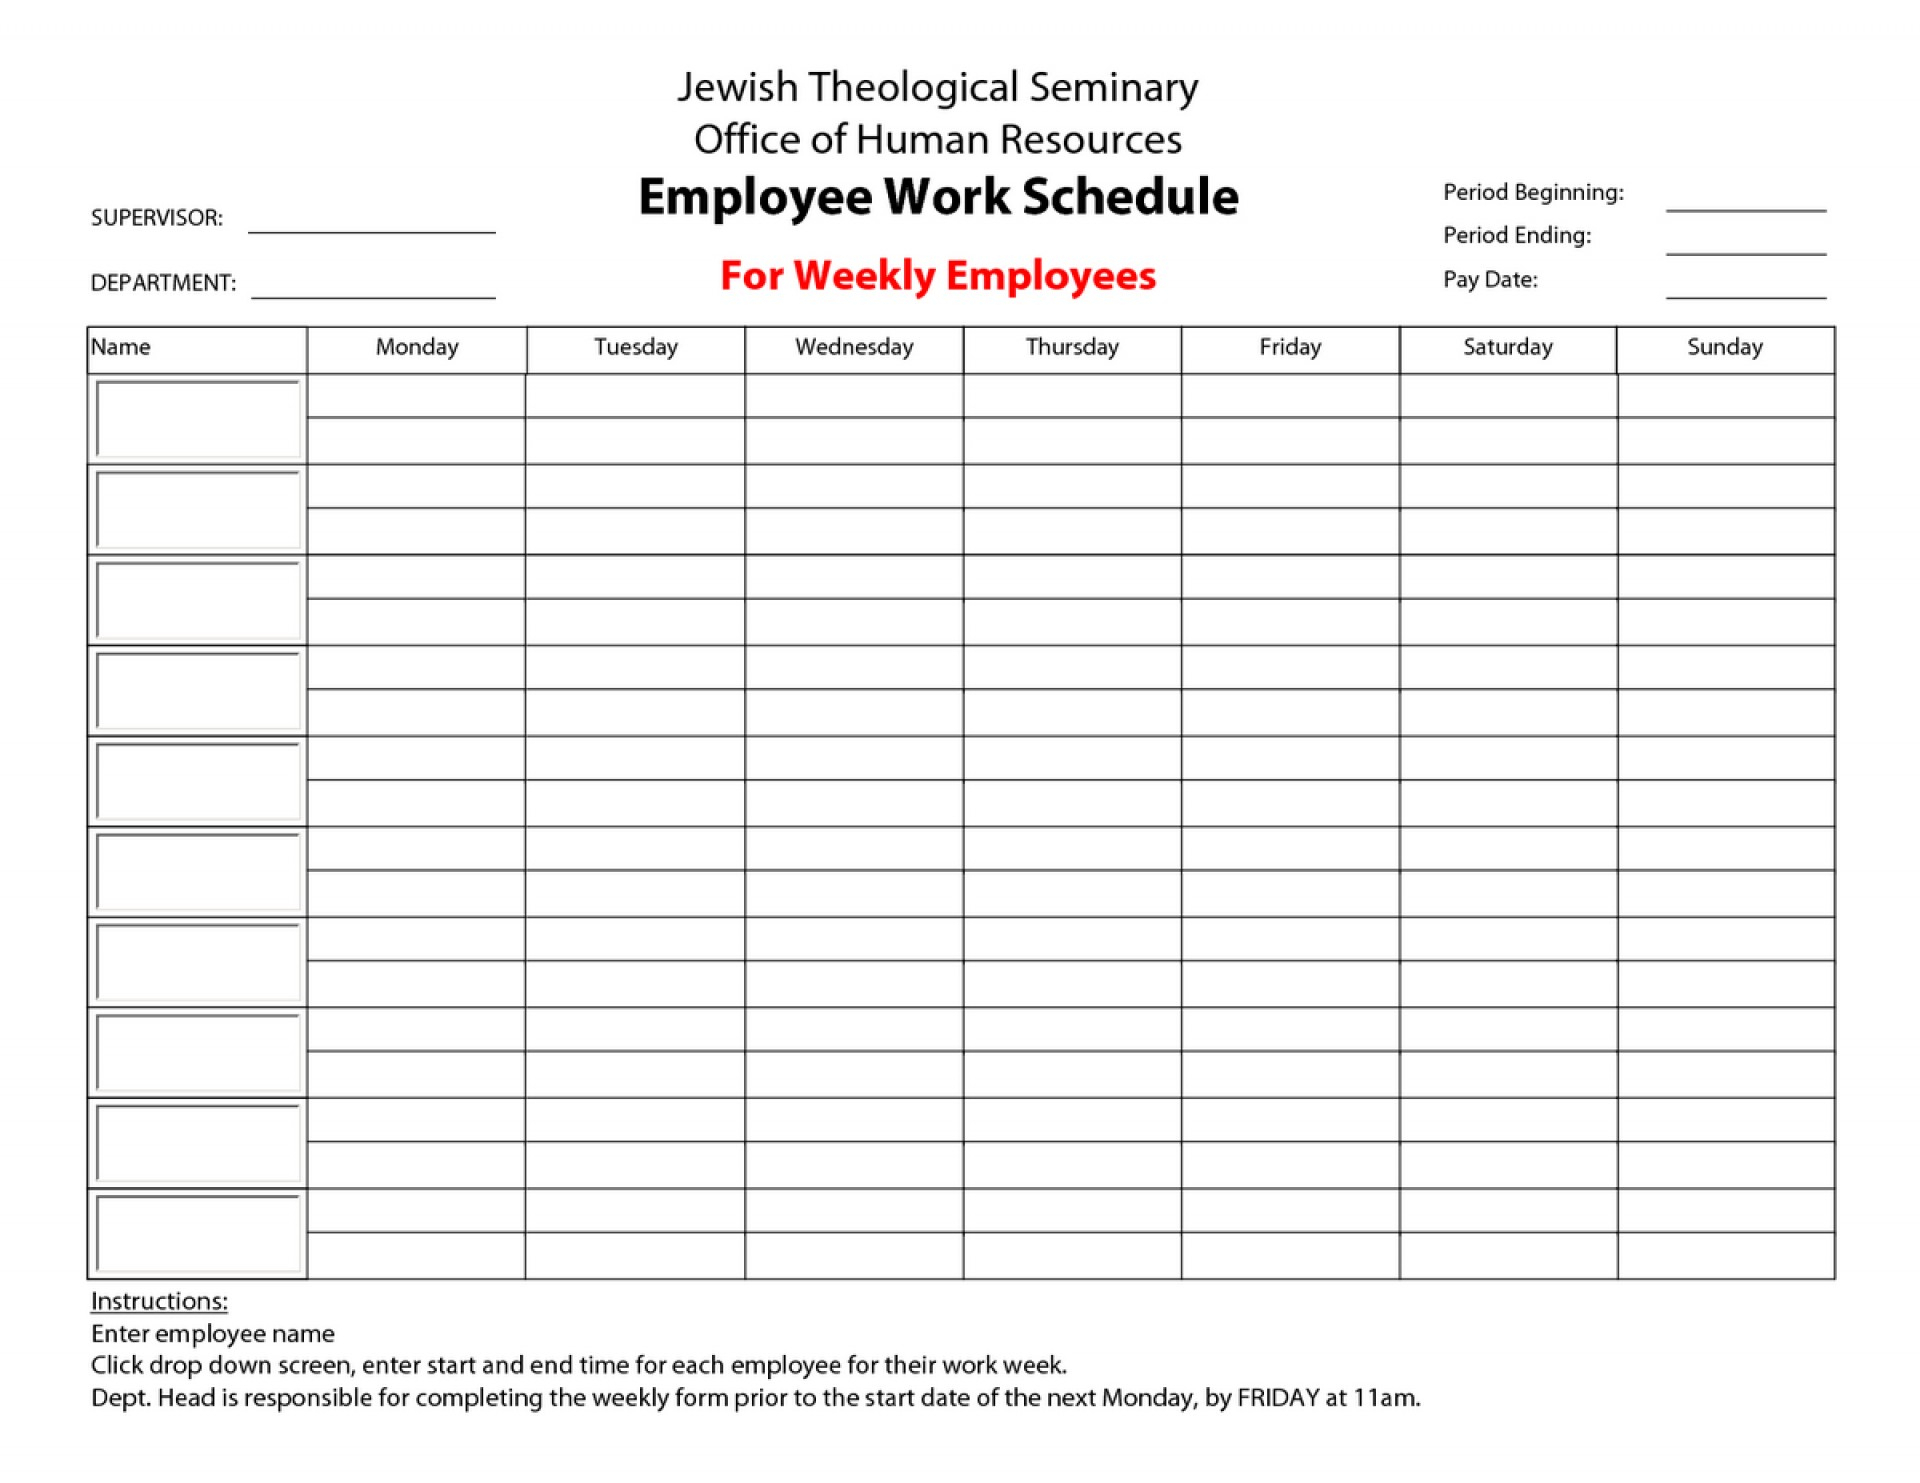 Inventory Spreadsheet For Small Business For 012 Small Business Inventory Spreadsheet Template Free ~ Ulyssesroom